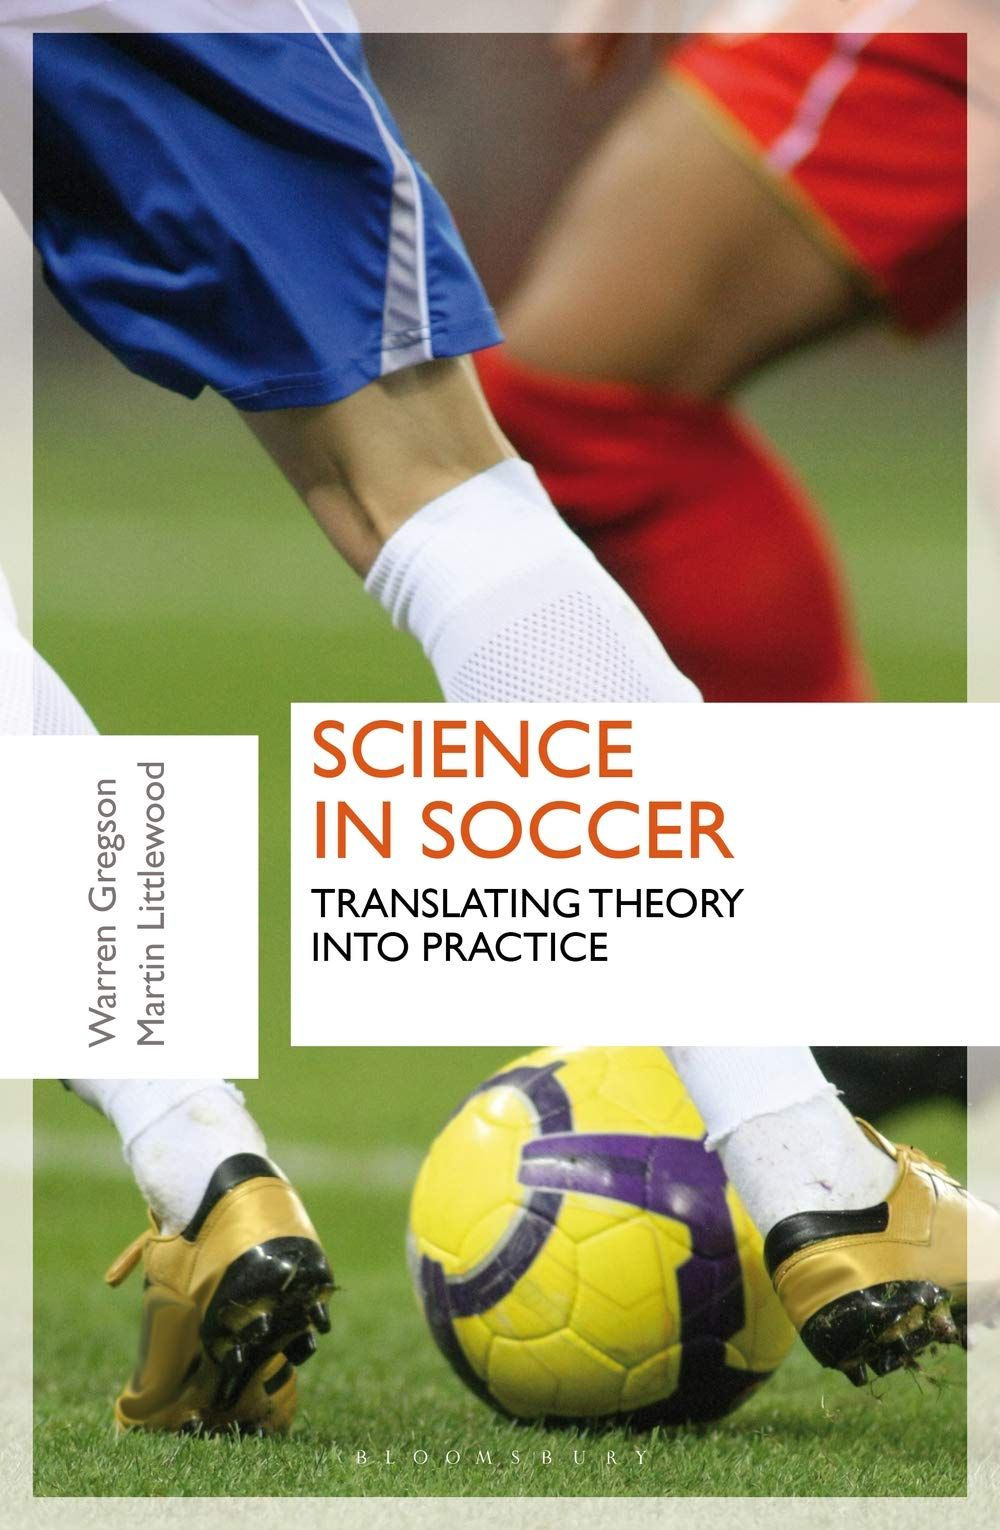 Science in Soccer Translating Theory into Practice